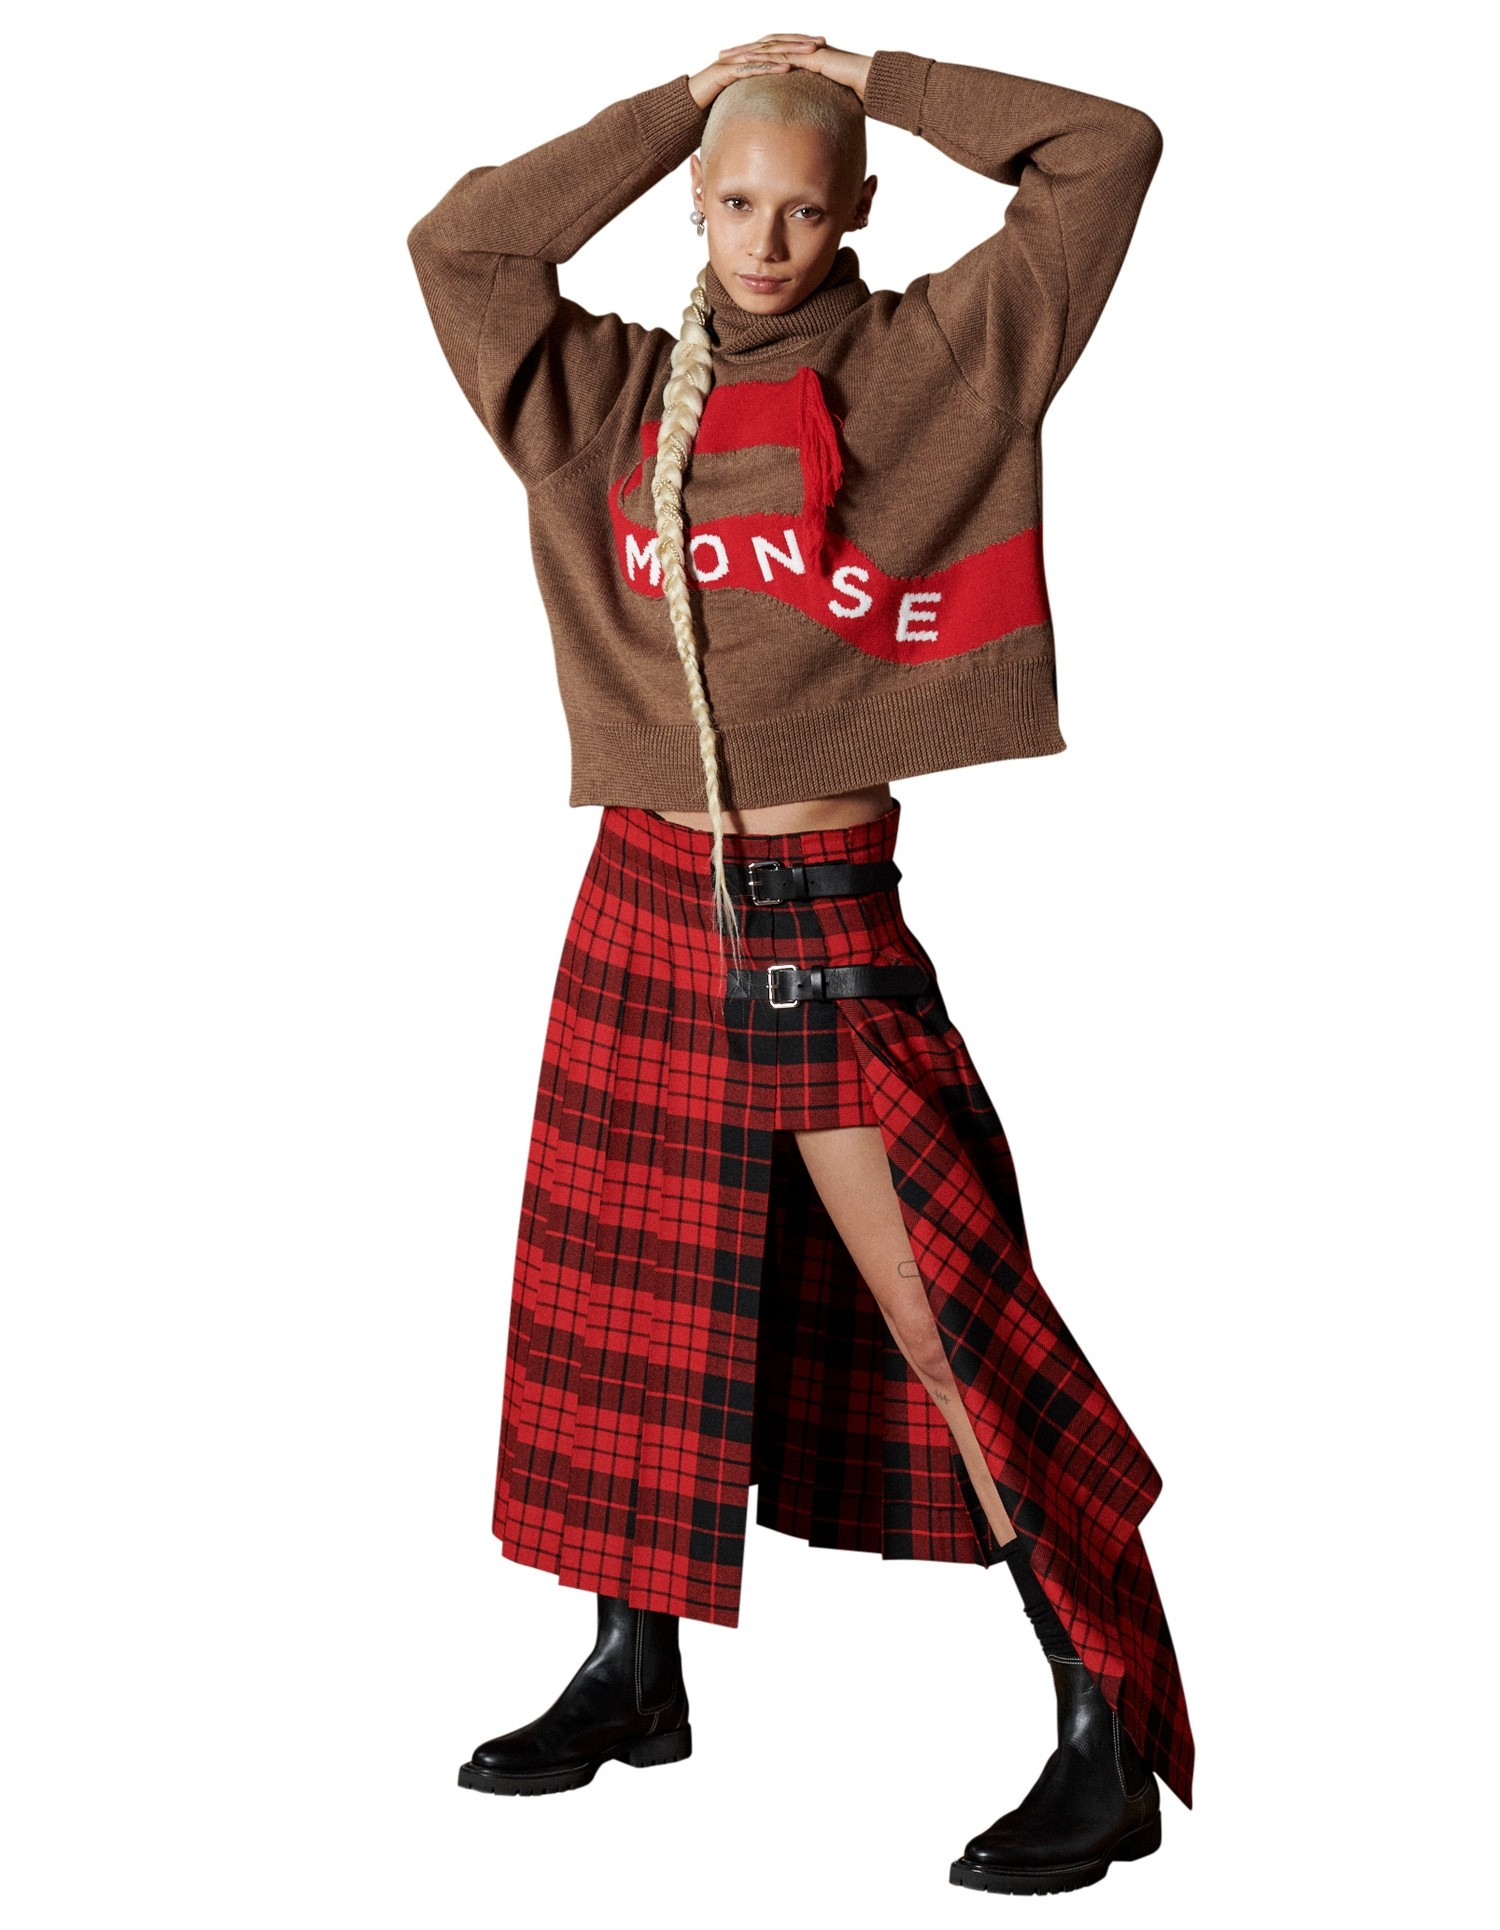 MONSE Tartan Pleated Academy Skirt in Scarlet and Black on Model Front View